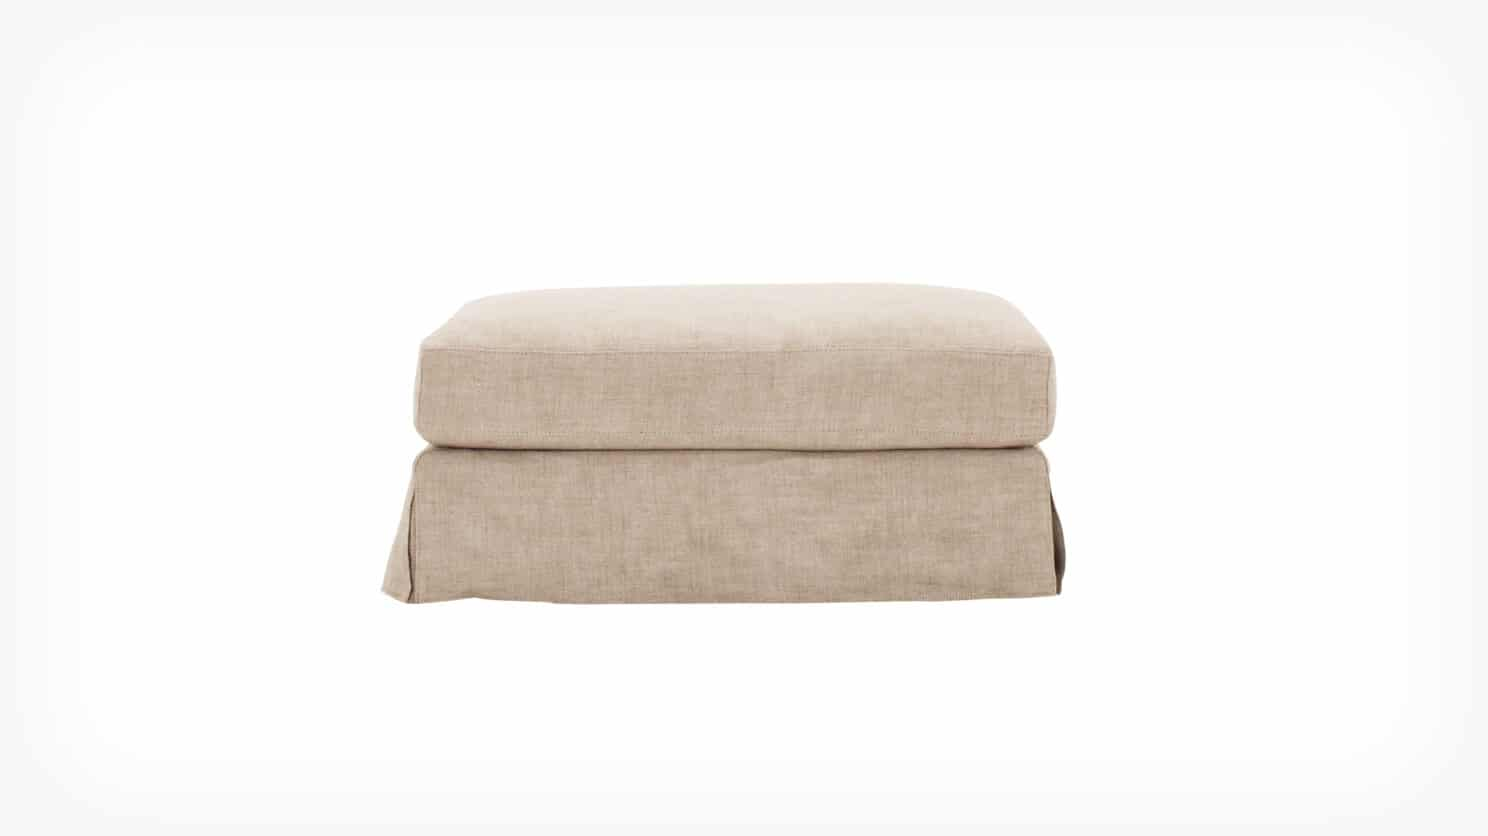 32113 04 01 ottoman slipcover blanche front view